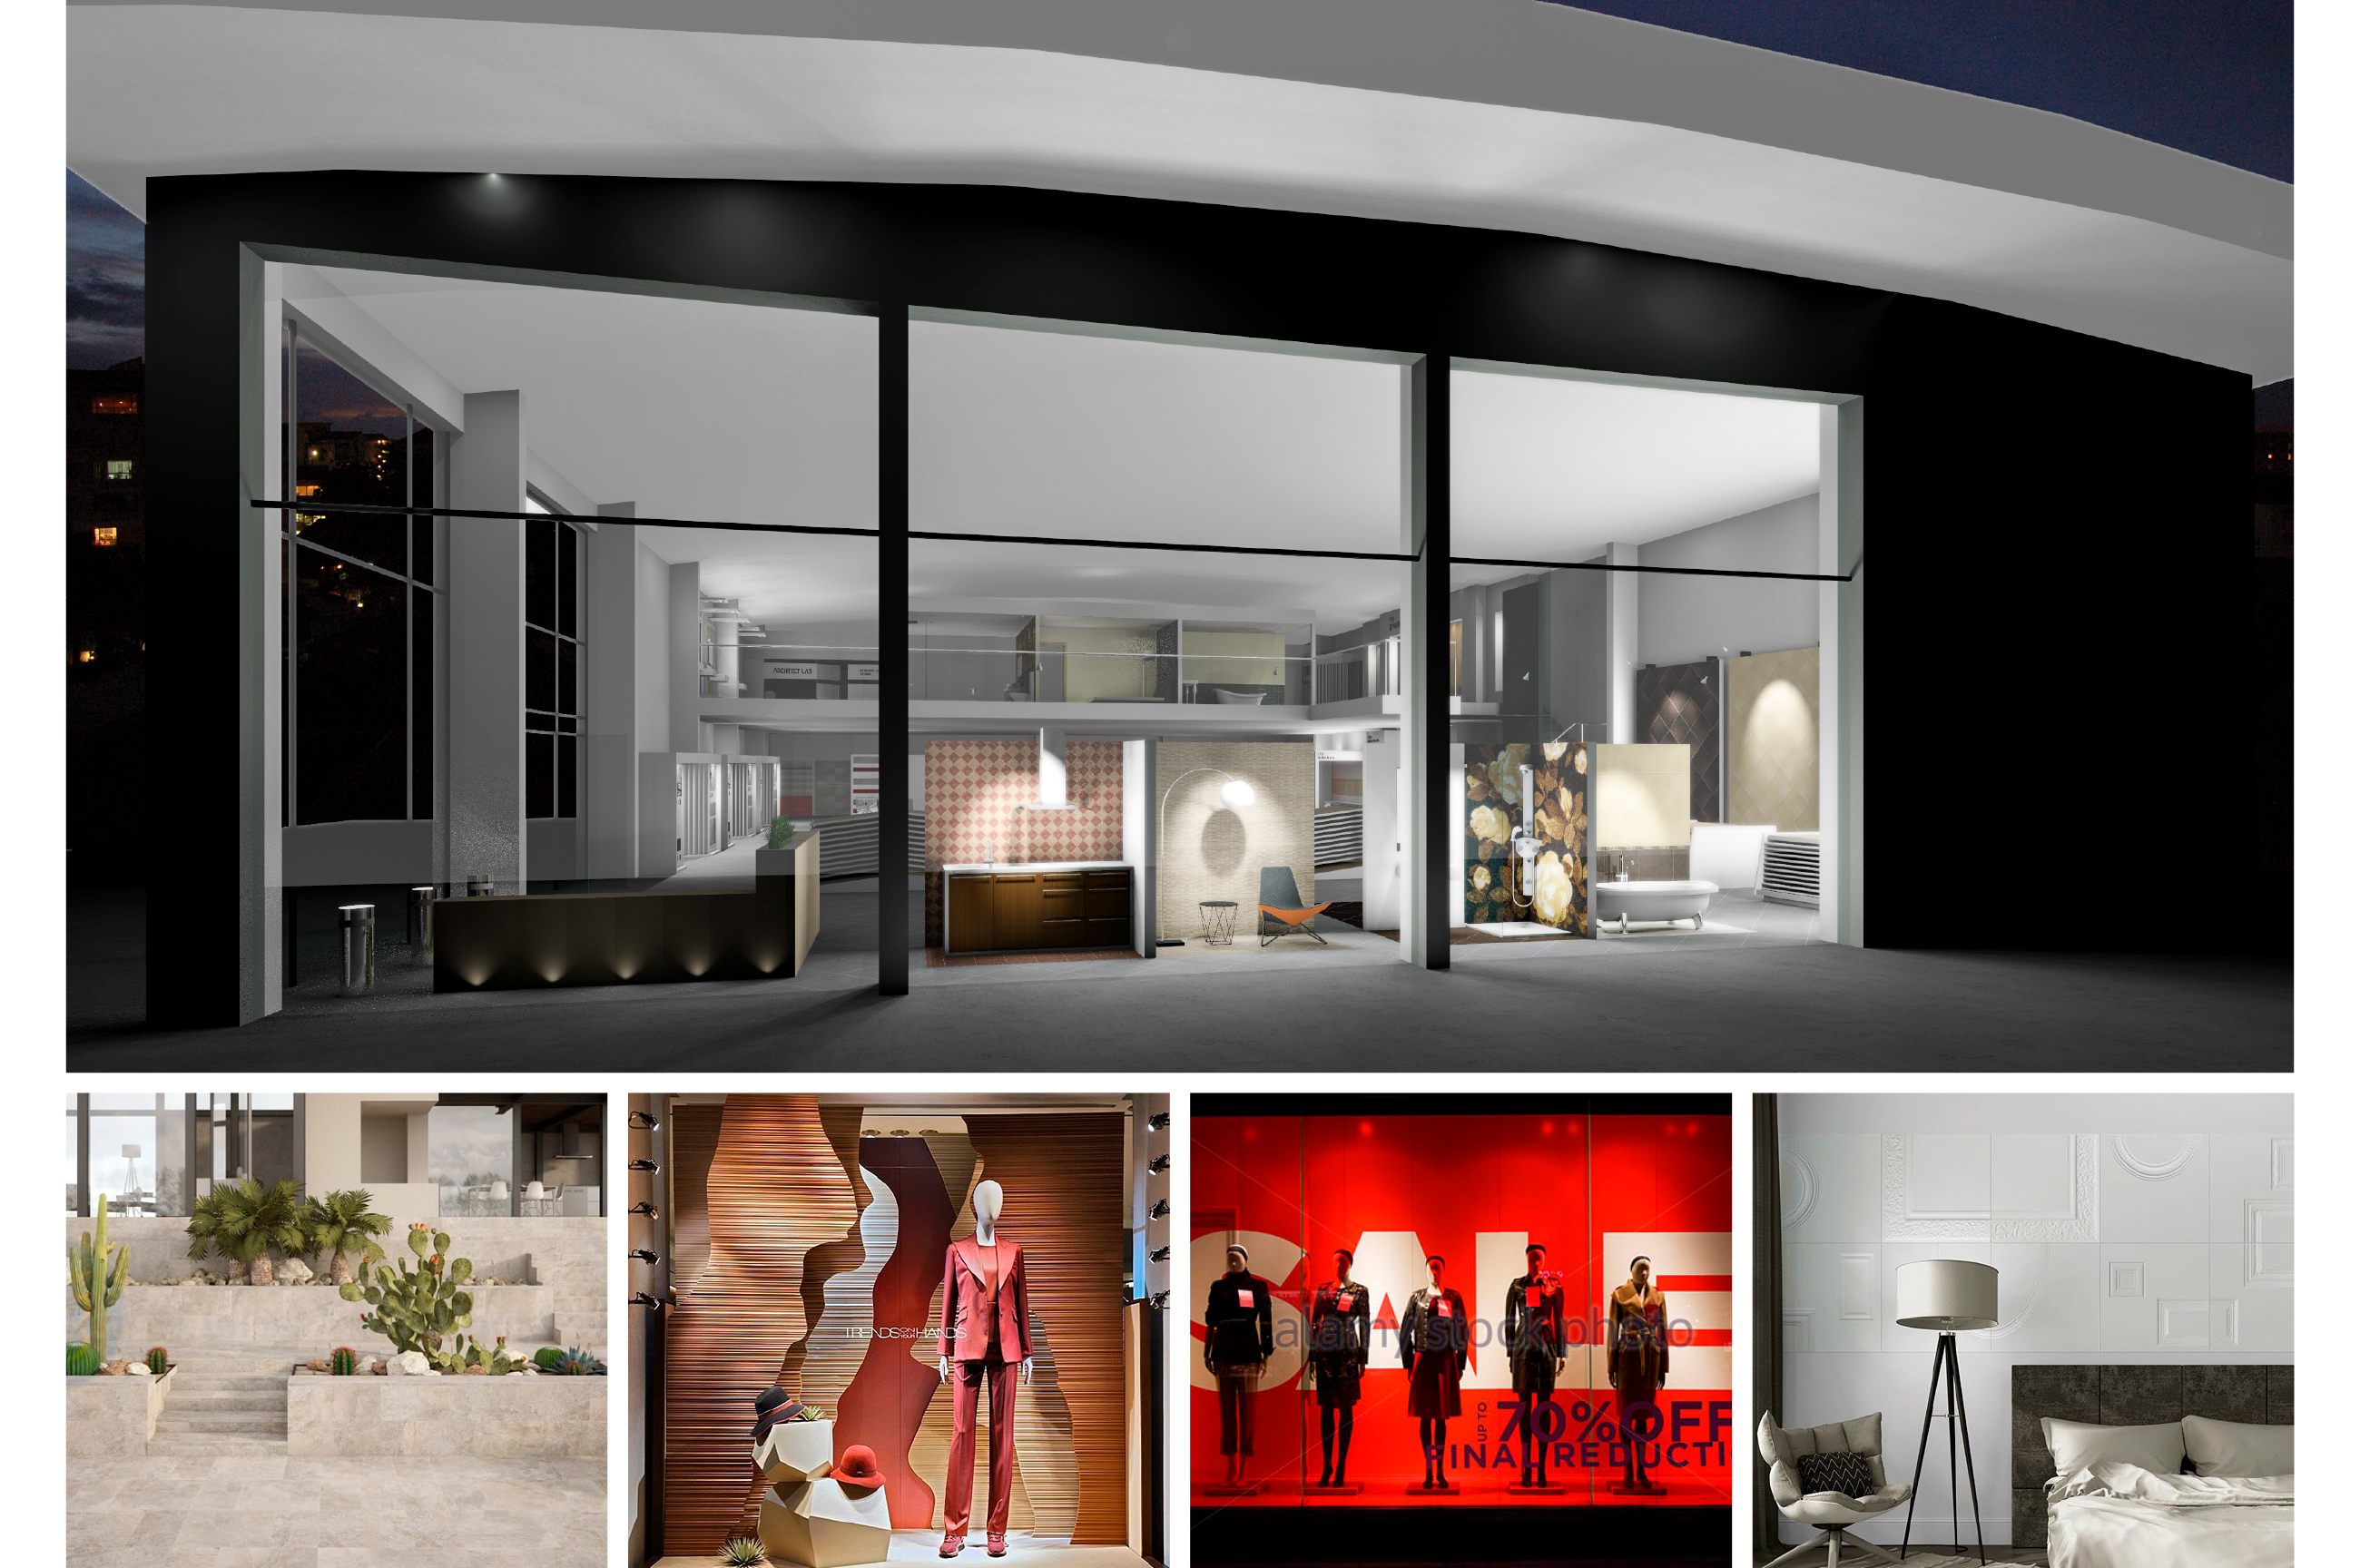 Tile Mountain showroom interior design - street view displays for exclusive tile collections